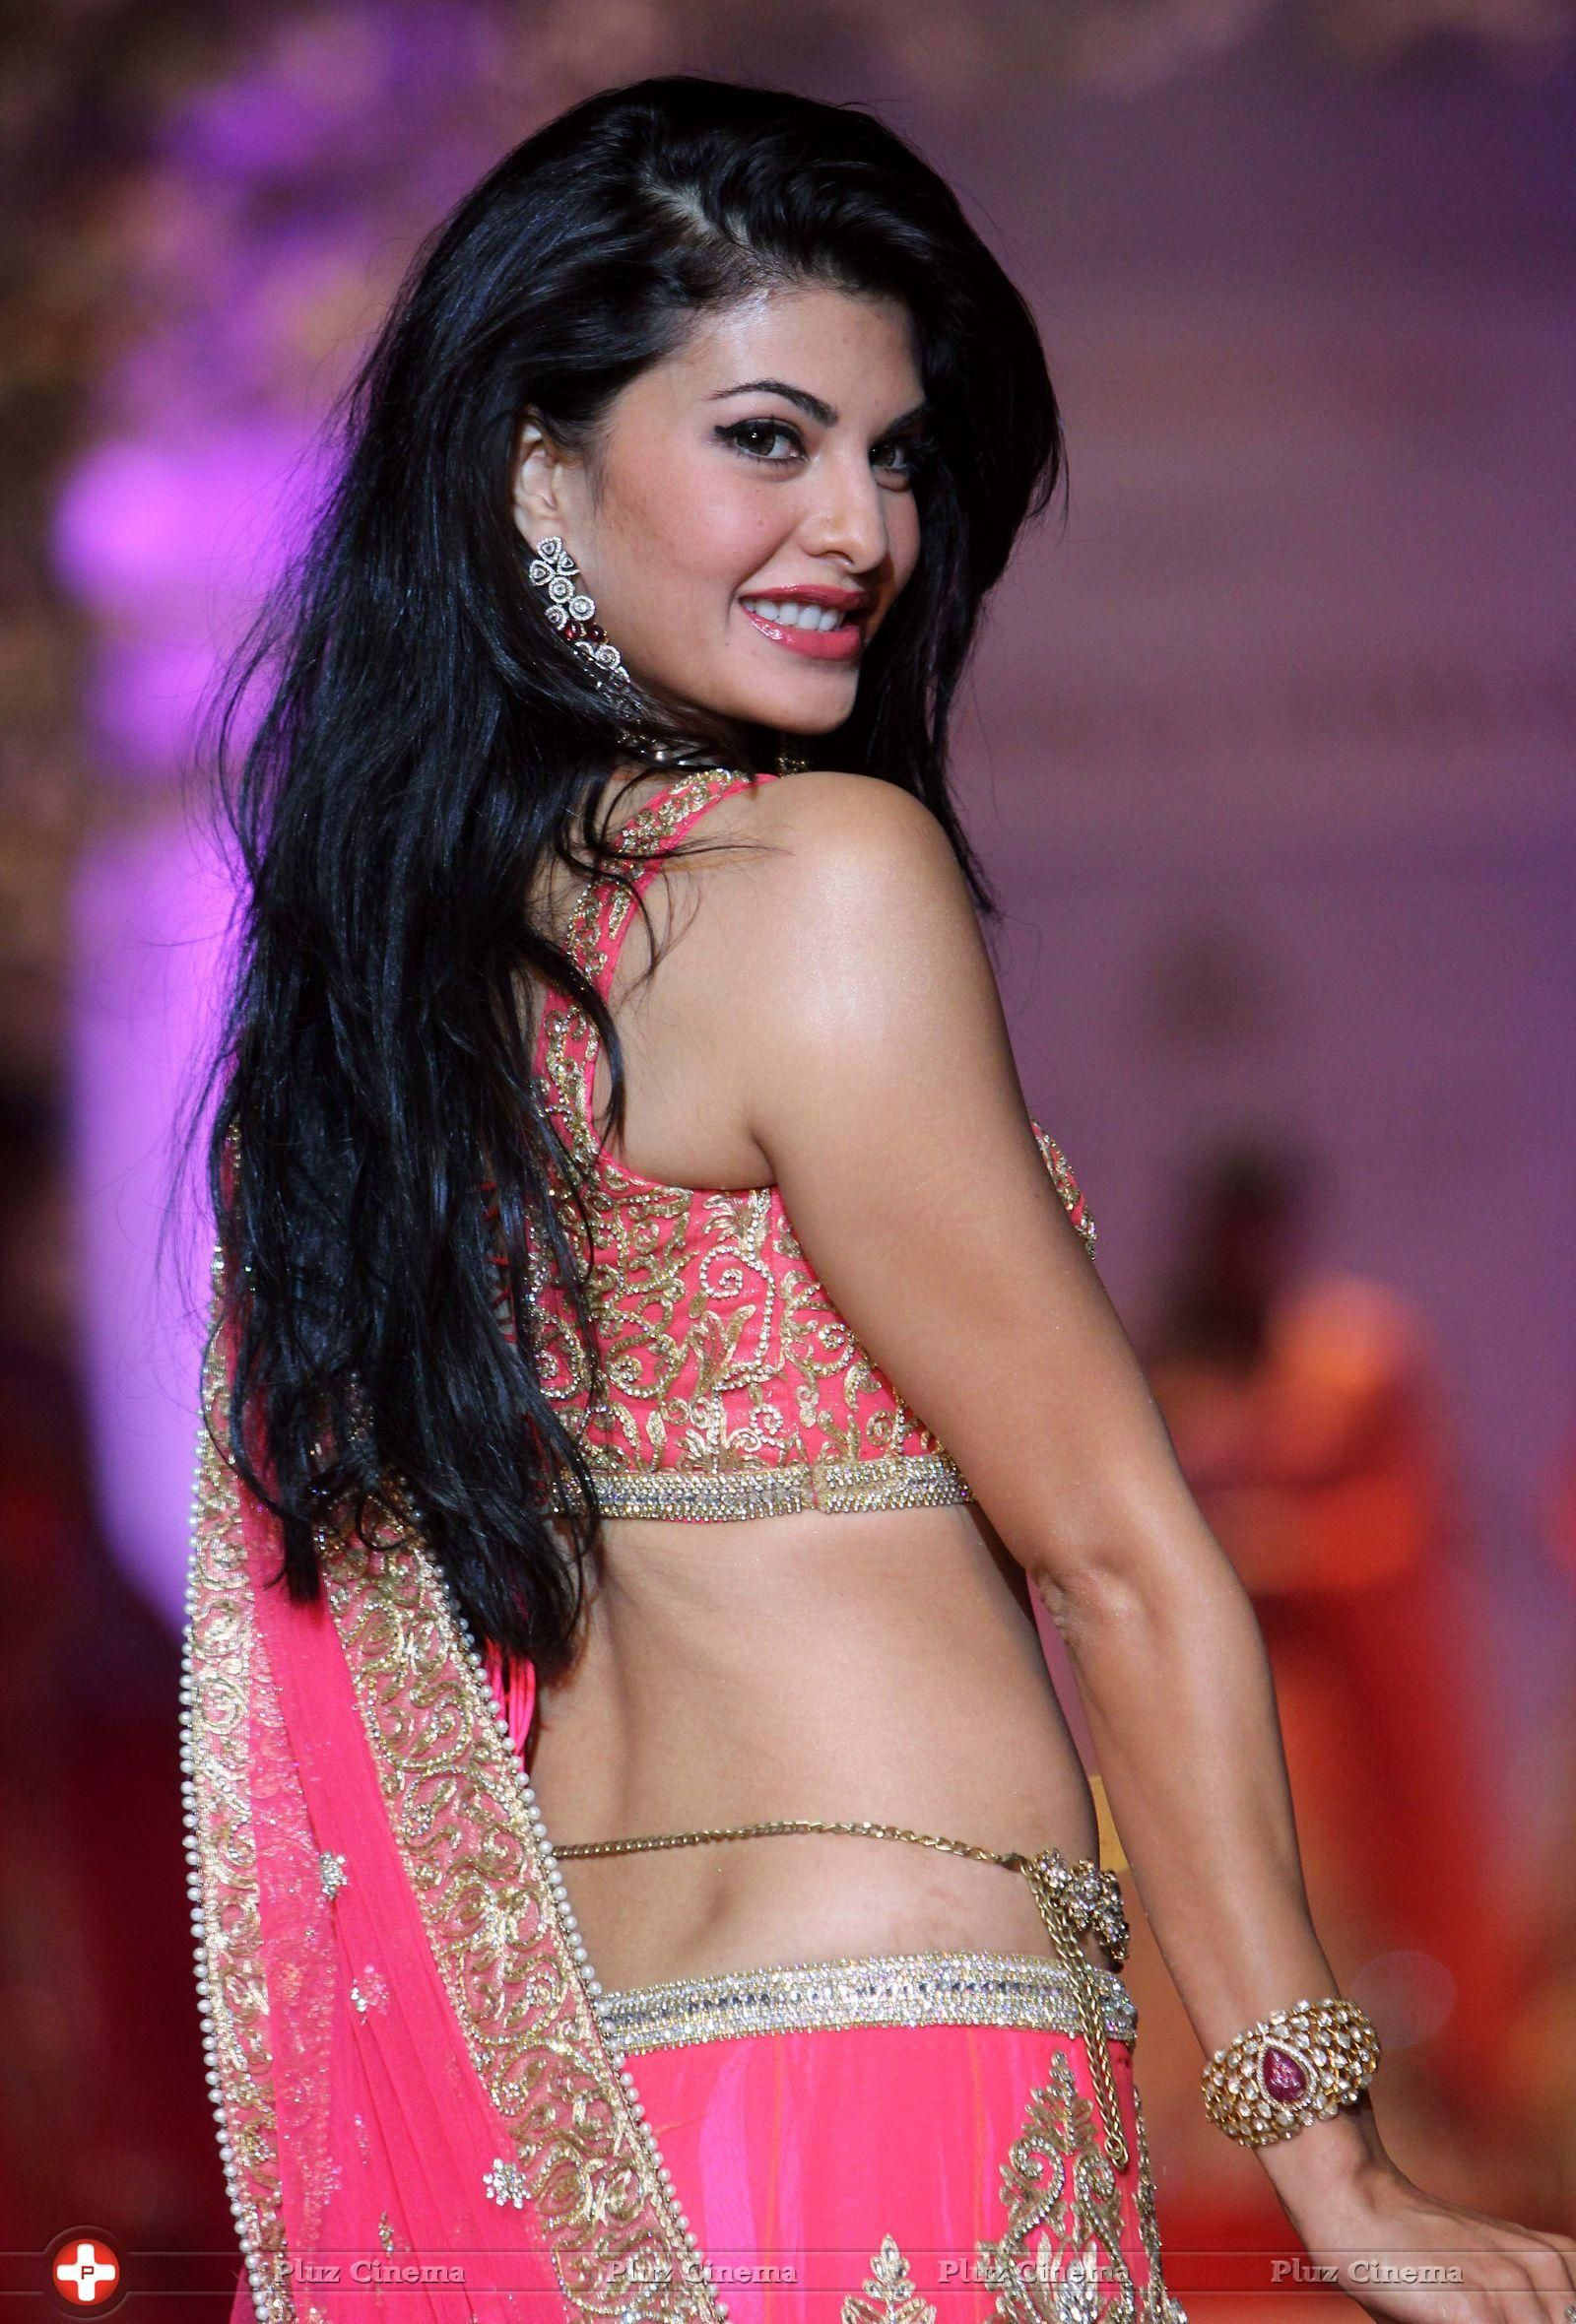 Jacqueline Fernandez Hot Pictures | Unusual Attractions